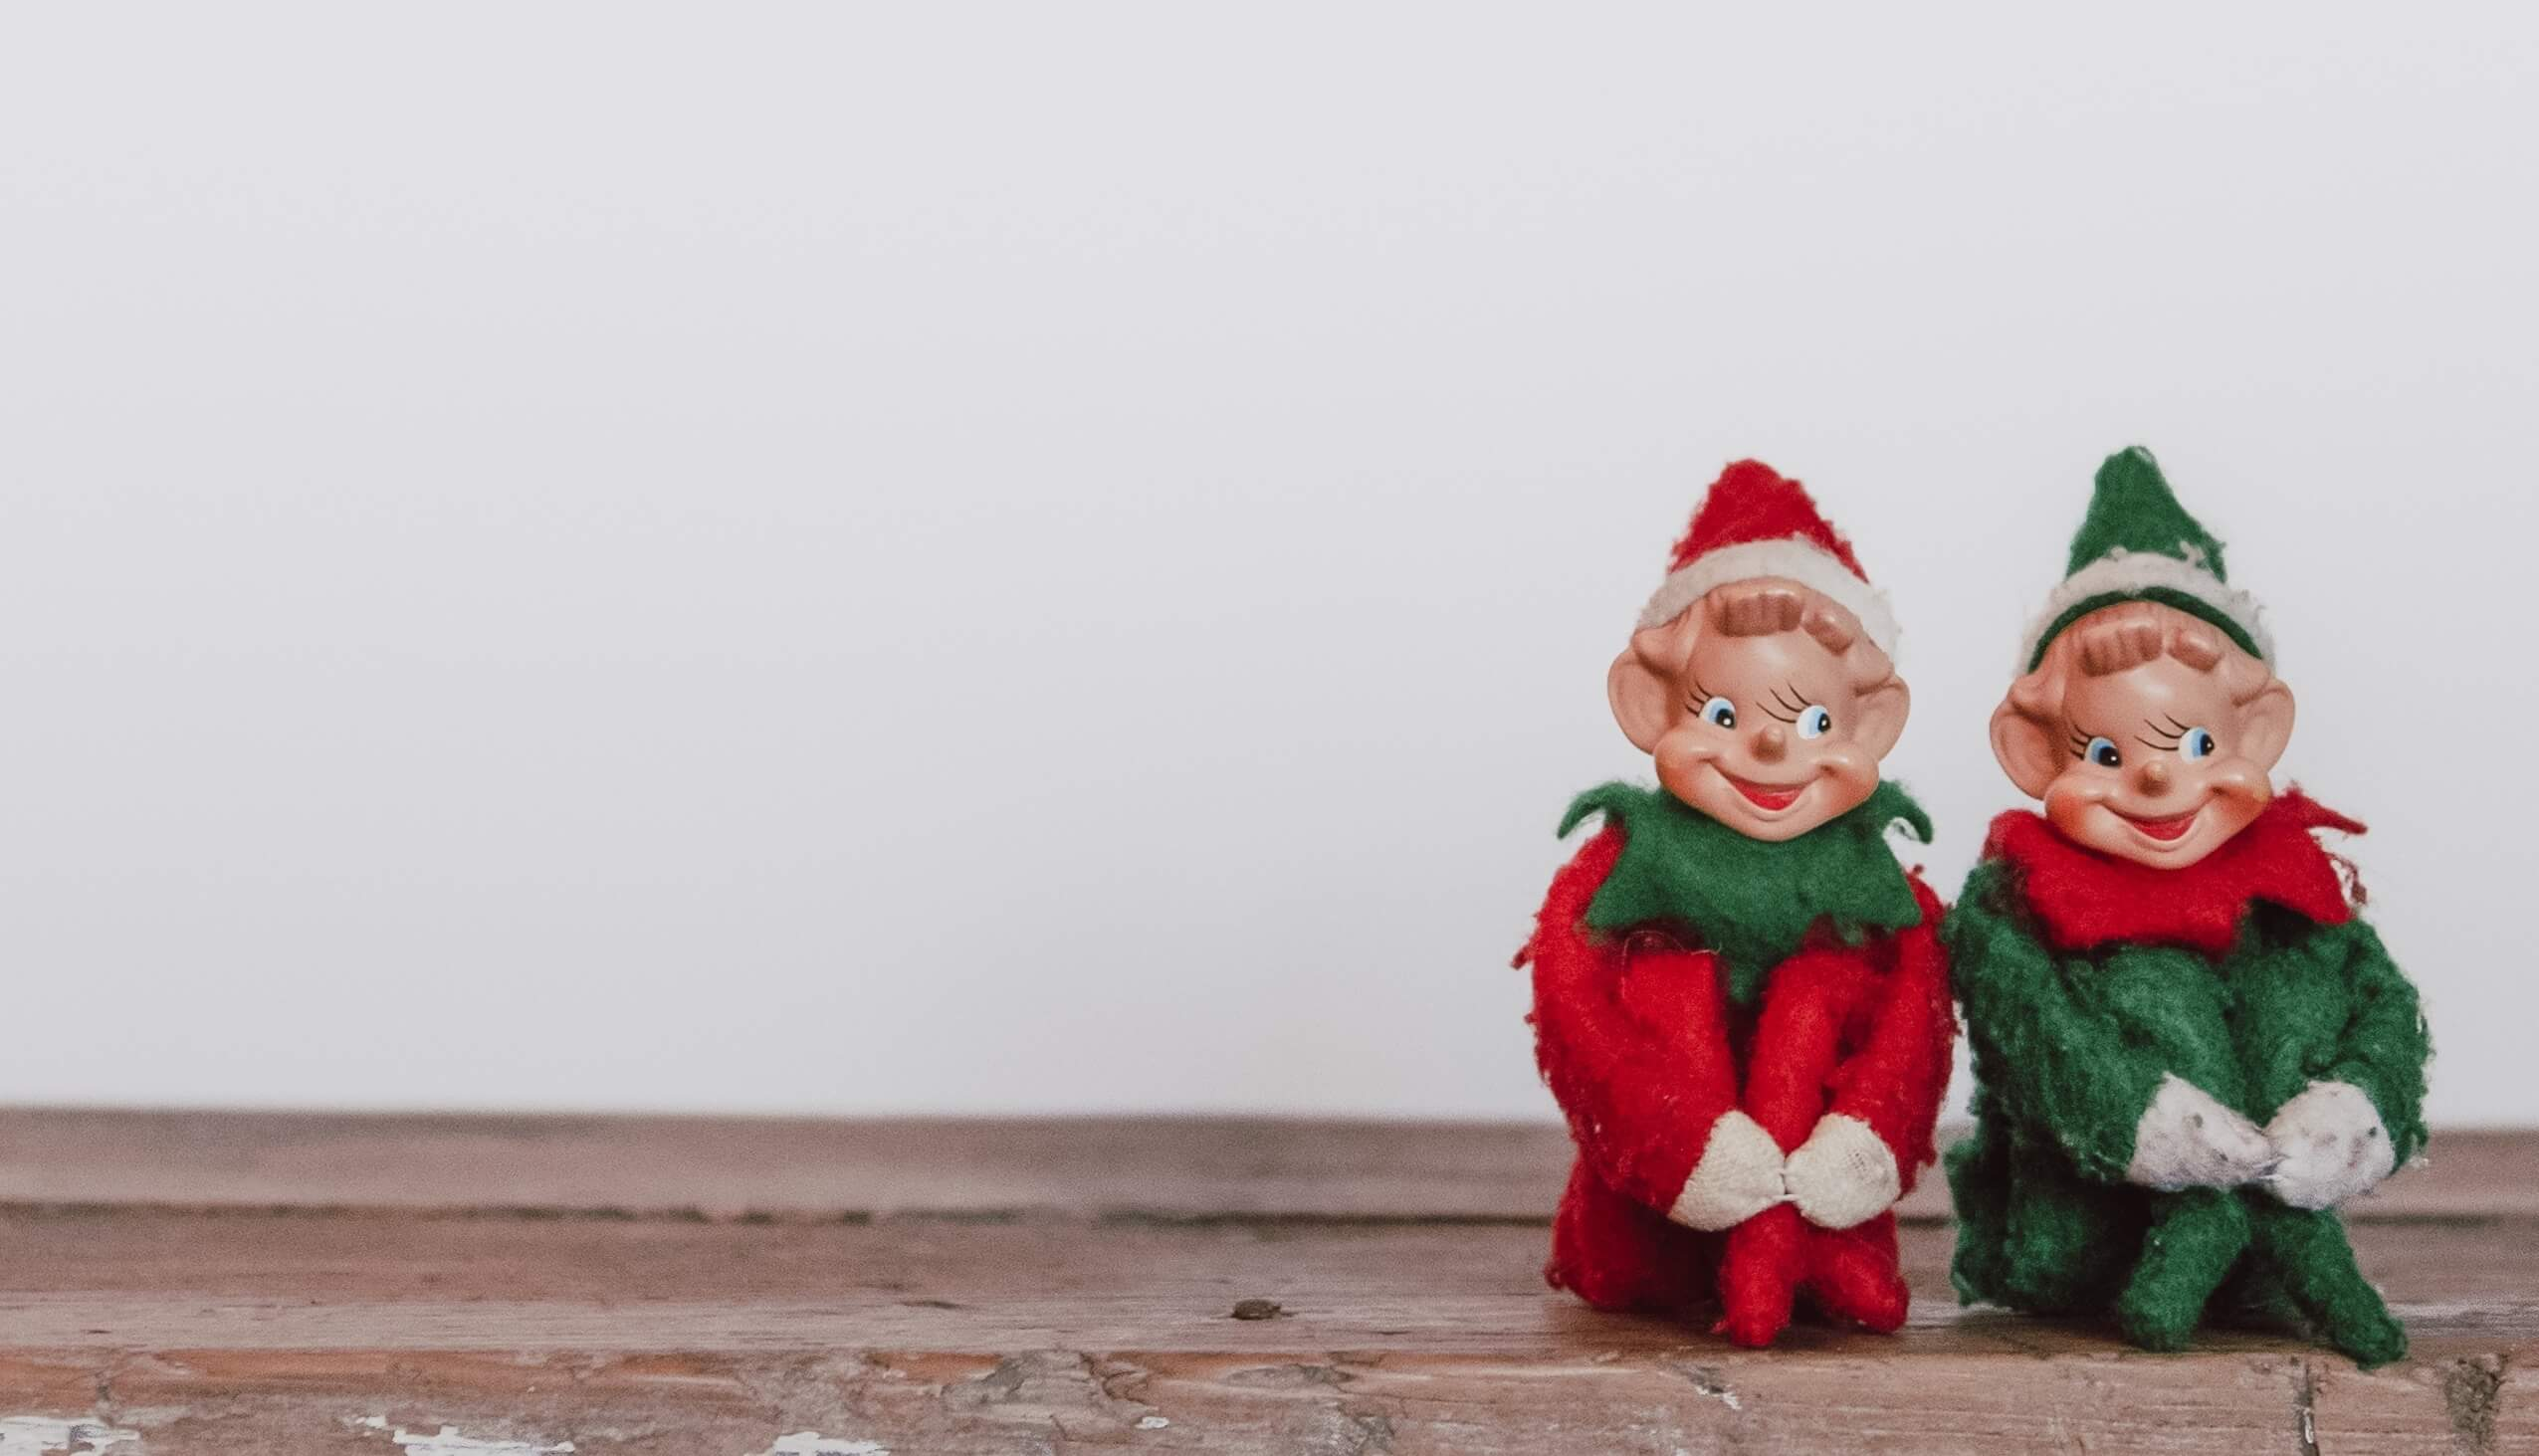 24 Short Christmas Tongue Twisters for Kids, Try Saying These 5 Times Fast